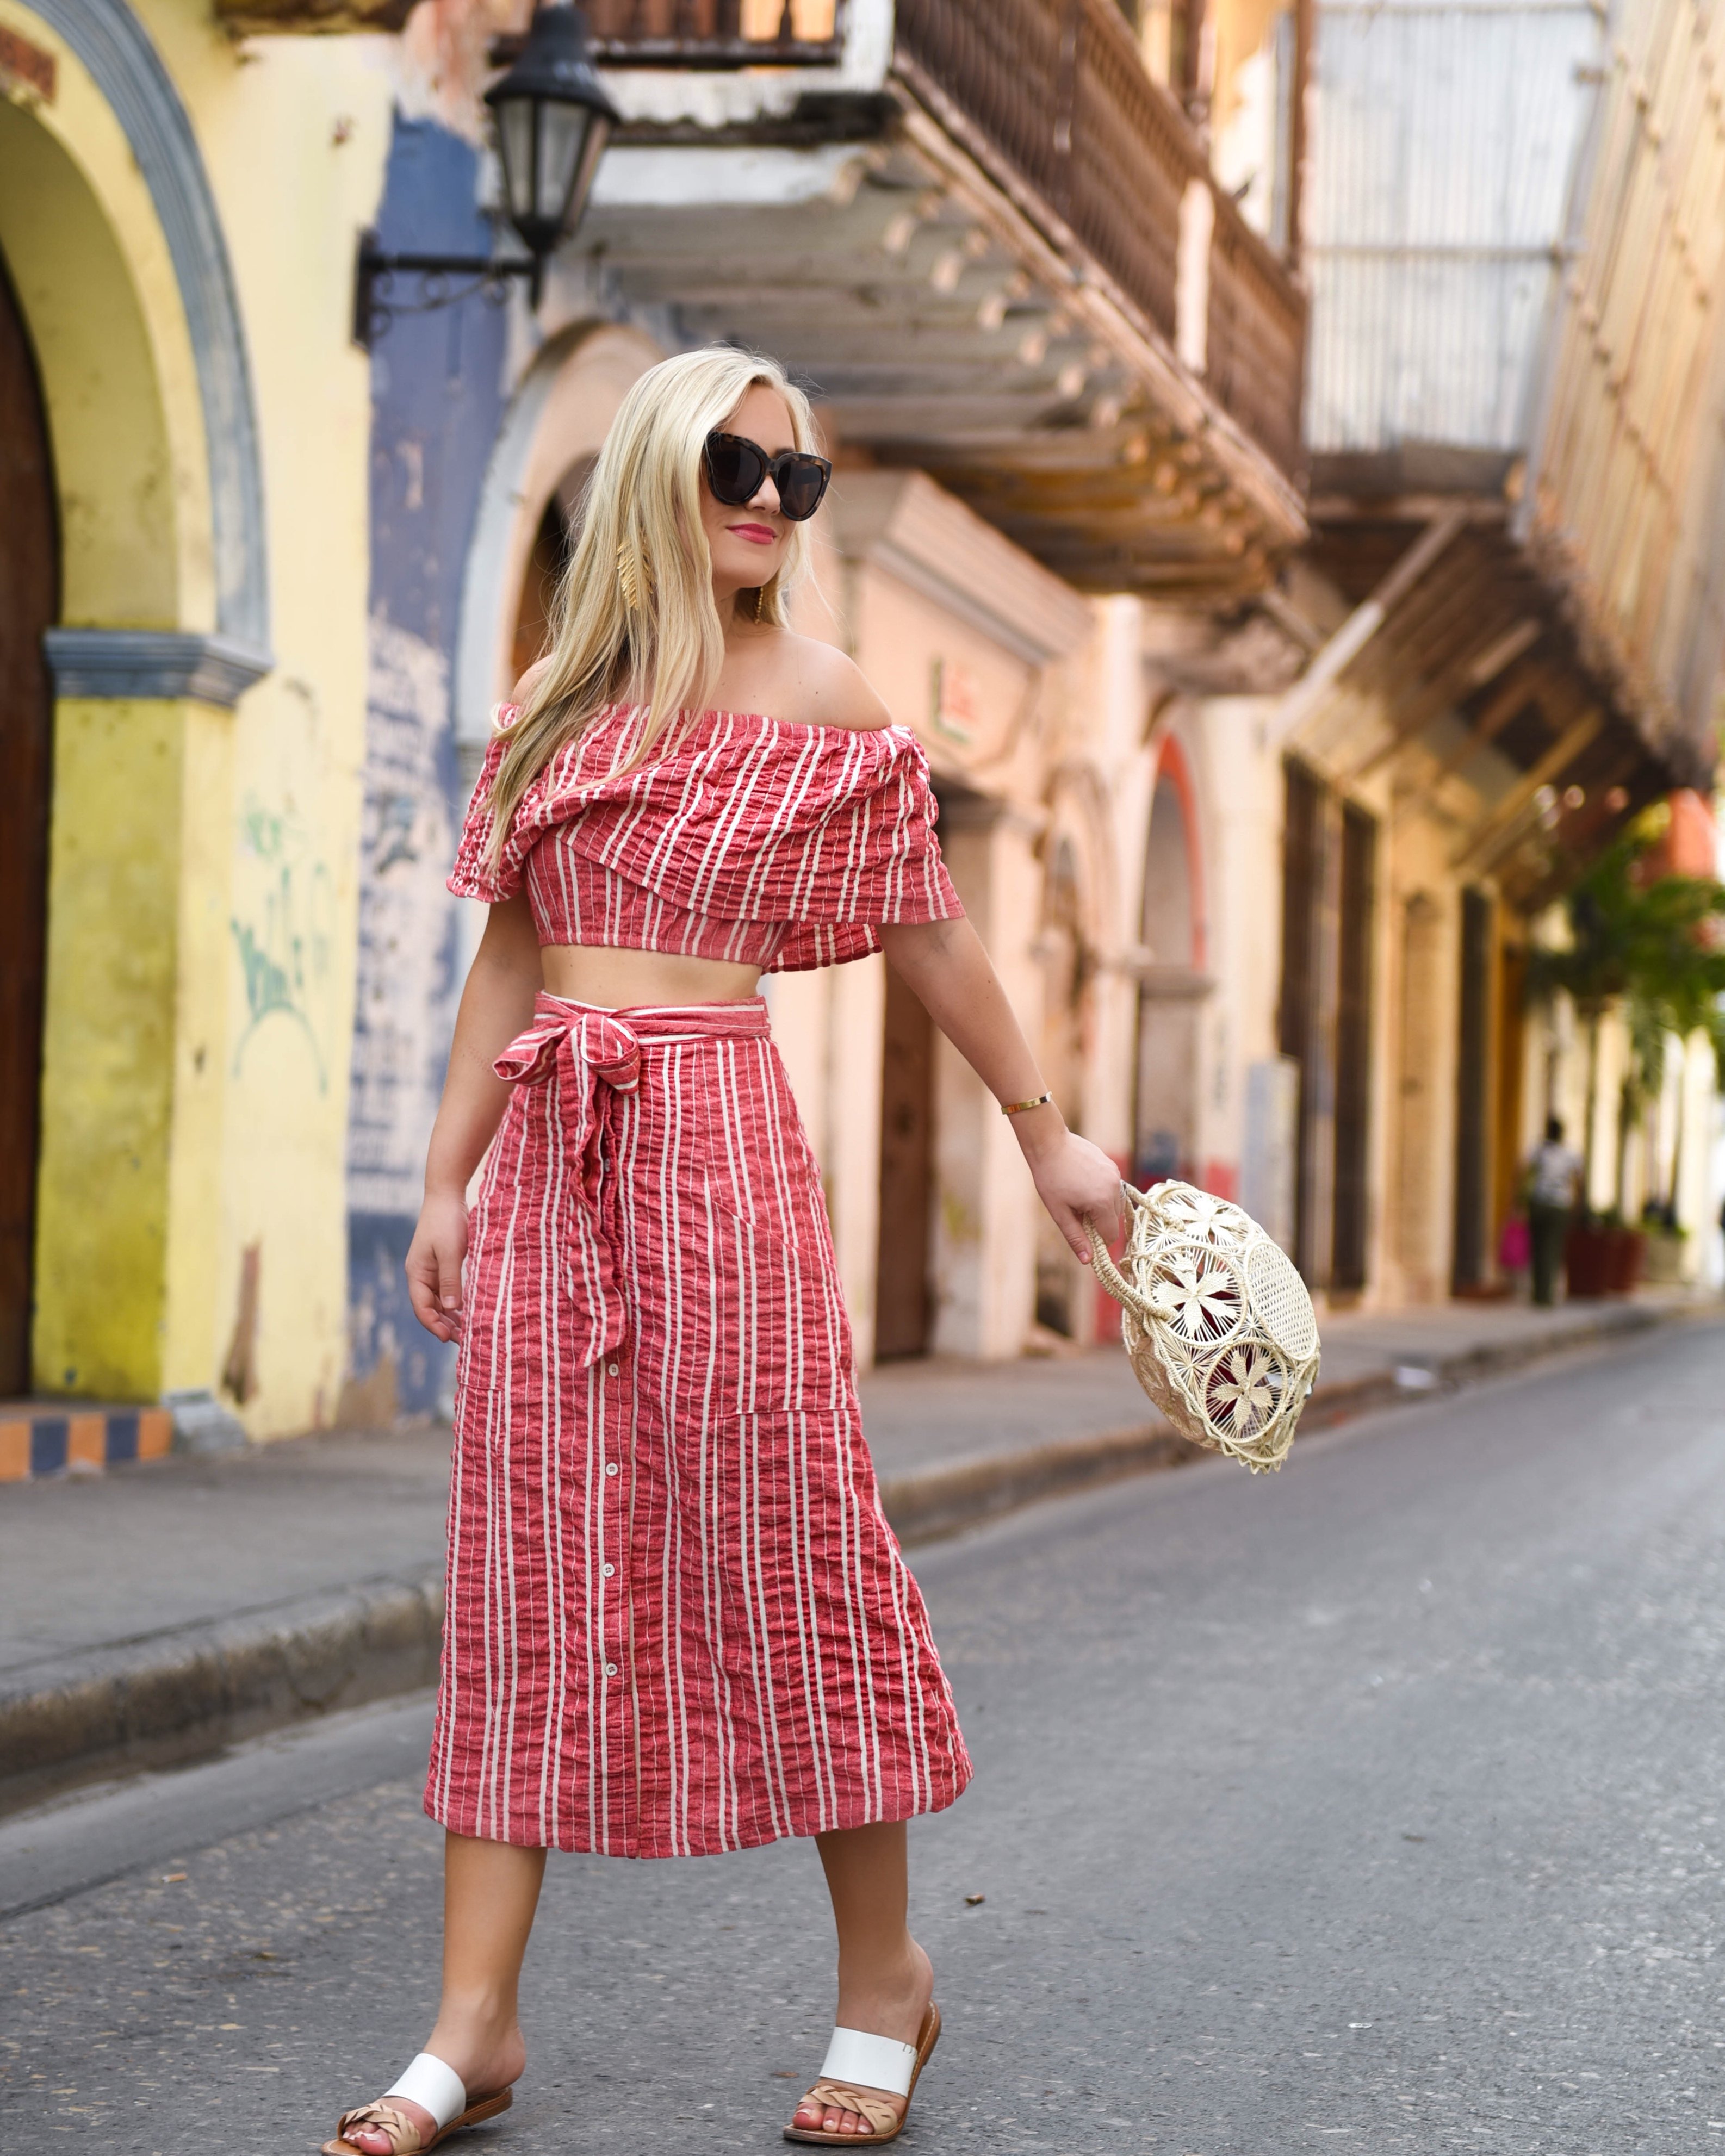 Matching Set, Matching set under 100, Nordstrom, Nordstrom Skirt, Nordstrom top, Lost + Wander, Lost + Wander set, Anthropologie, Anthropologie bag, Cartagena, red and white stripe, red and white stripe dress, Nordstrom Women's